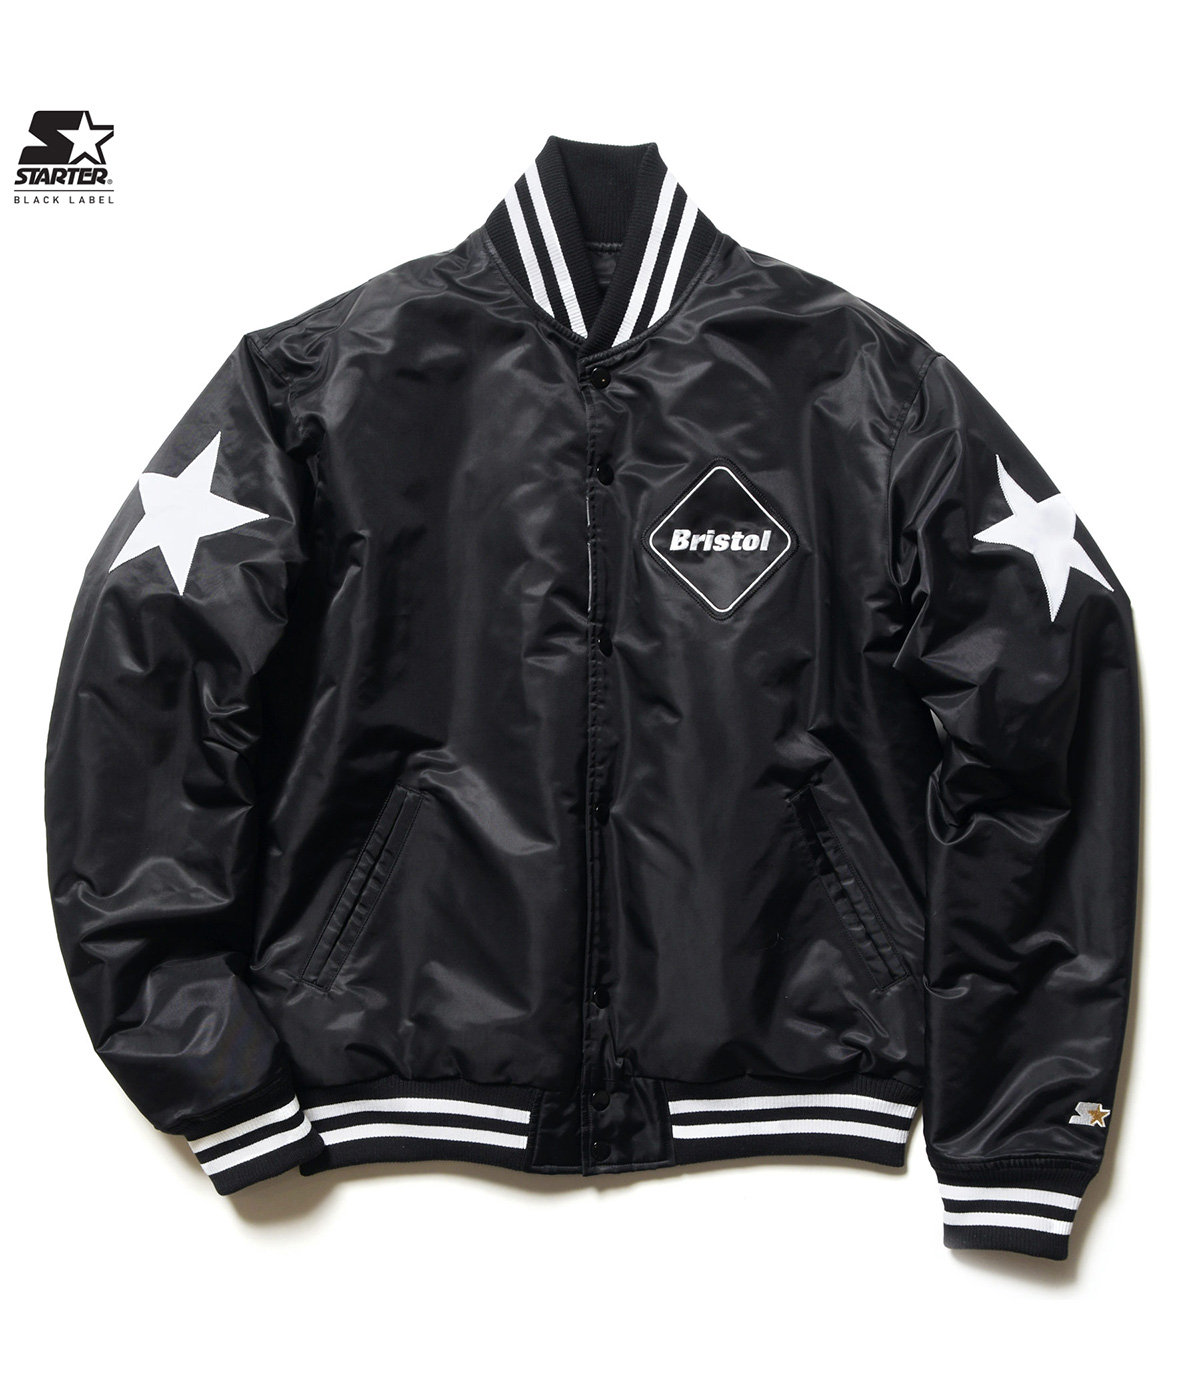 STARTER BLACK LABEL REVERSIBLE STADIUM JACKET